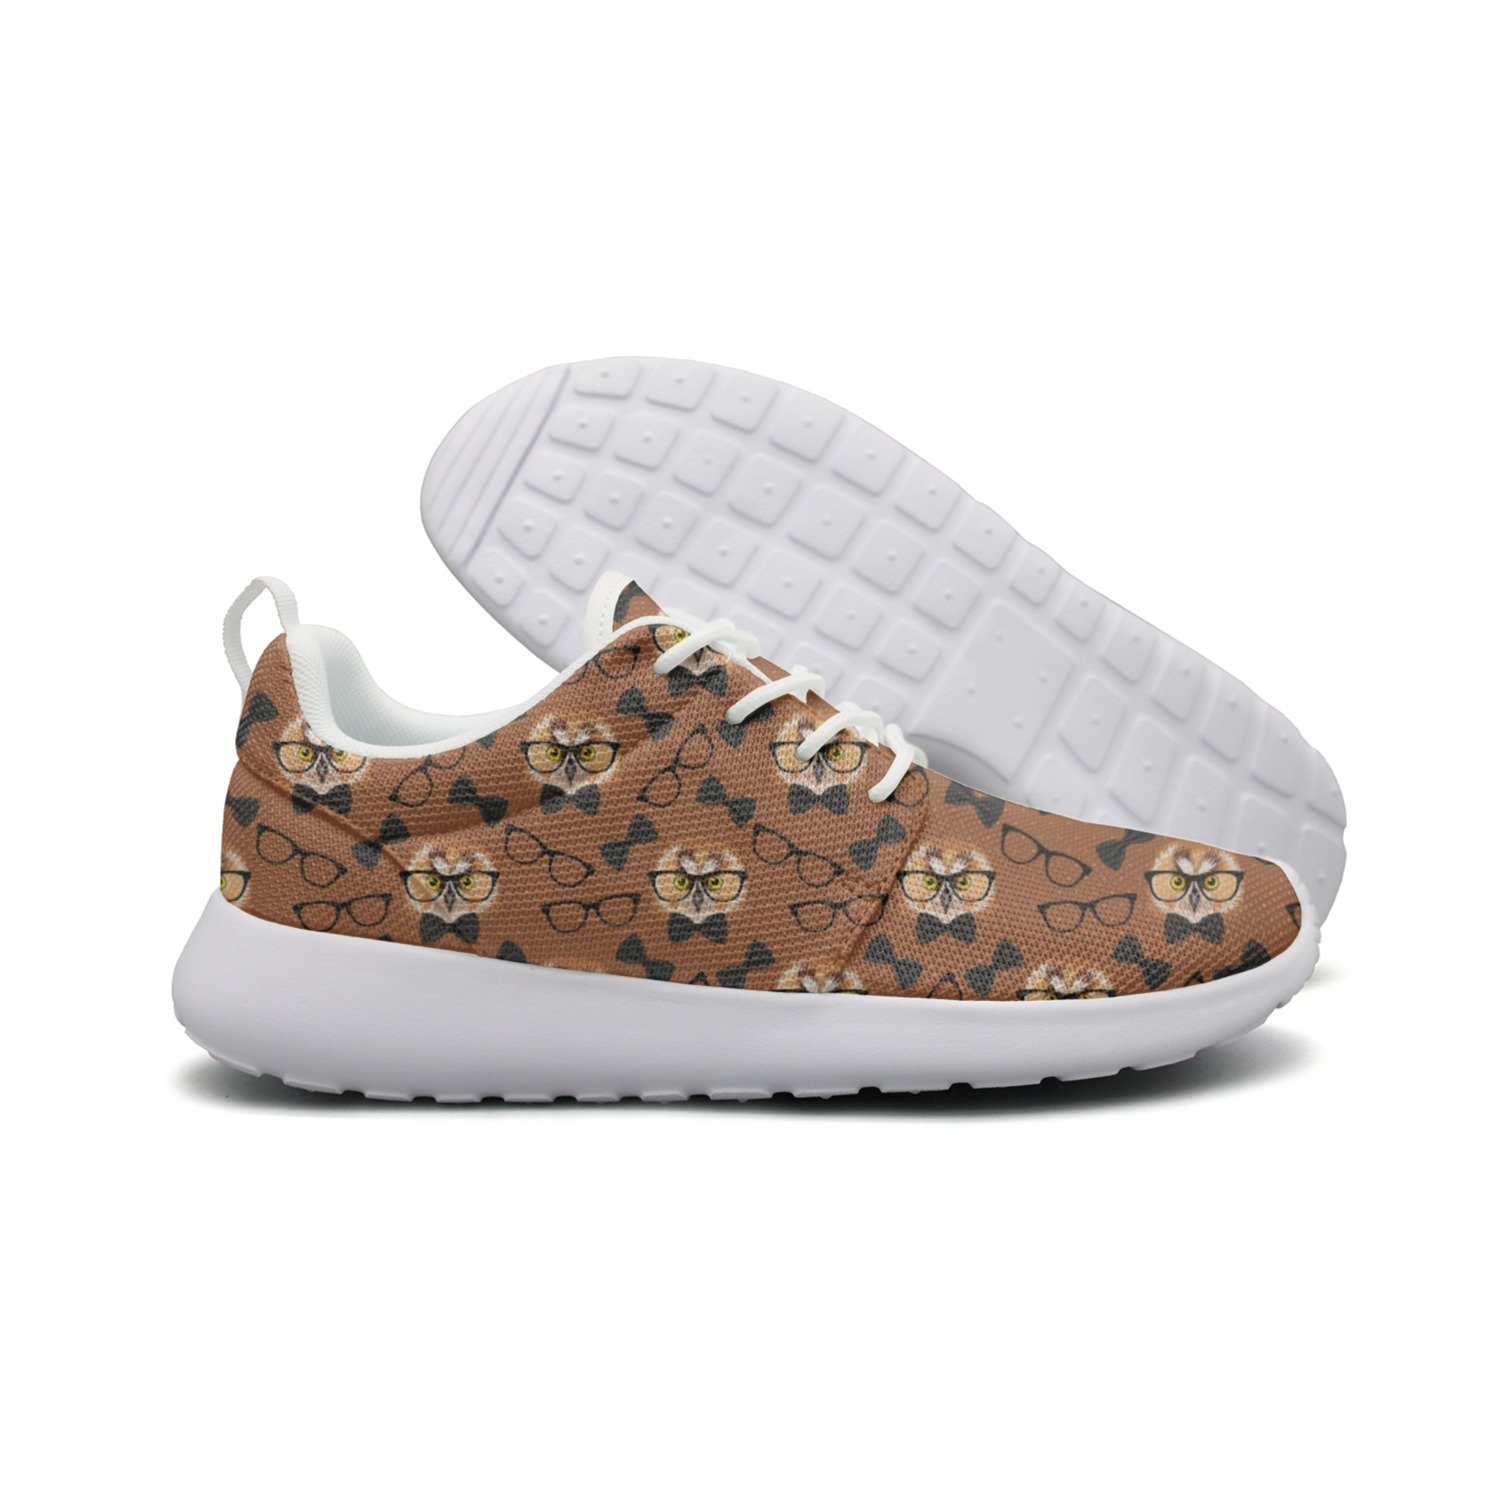 ERSER Owl With Glasses Woman's Camping Running Shoes Cool Colorful by ERSER